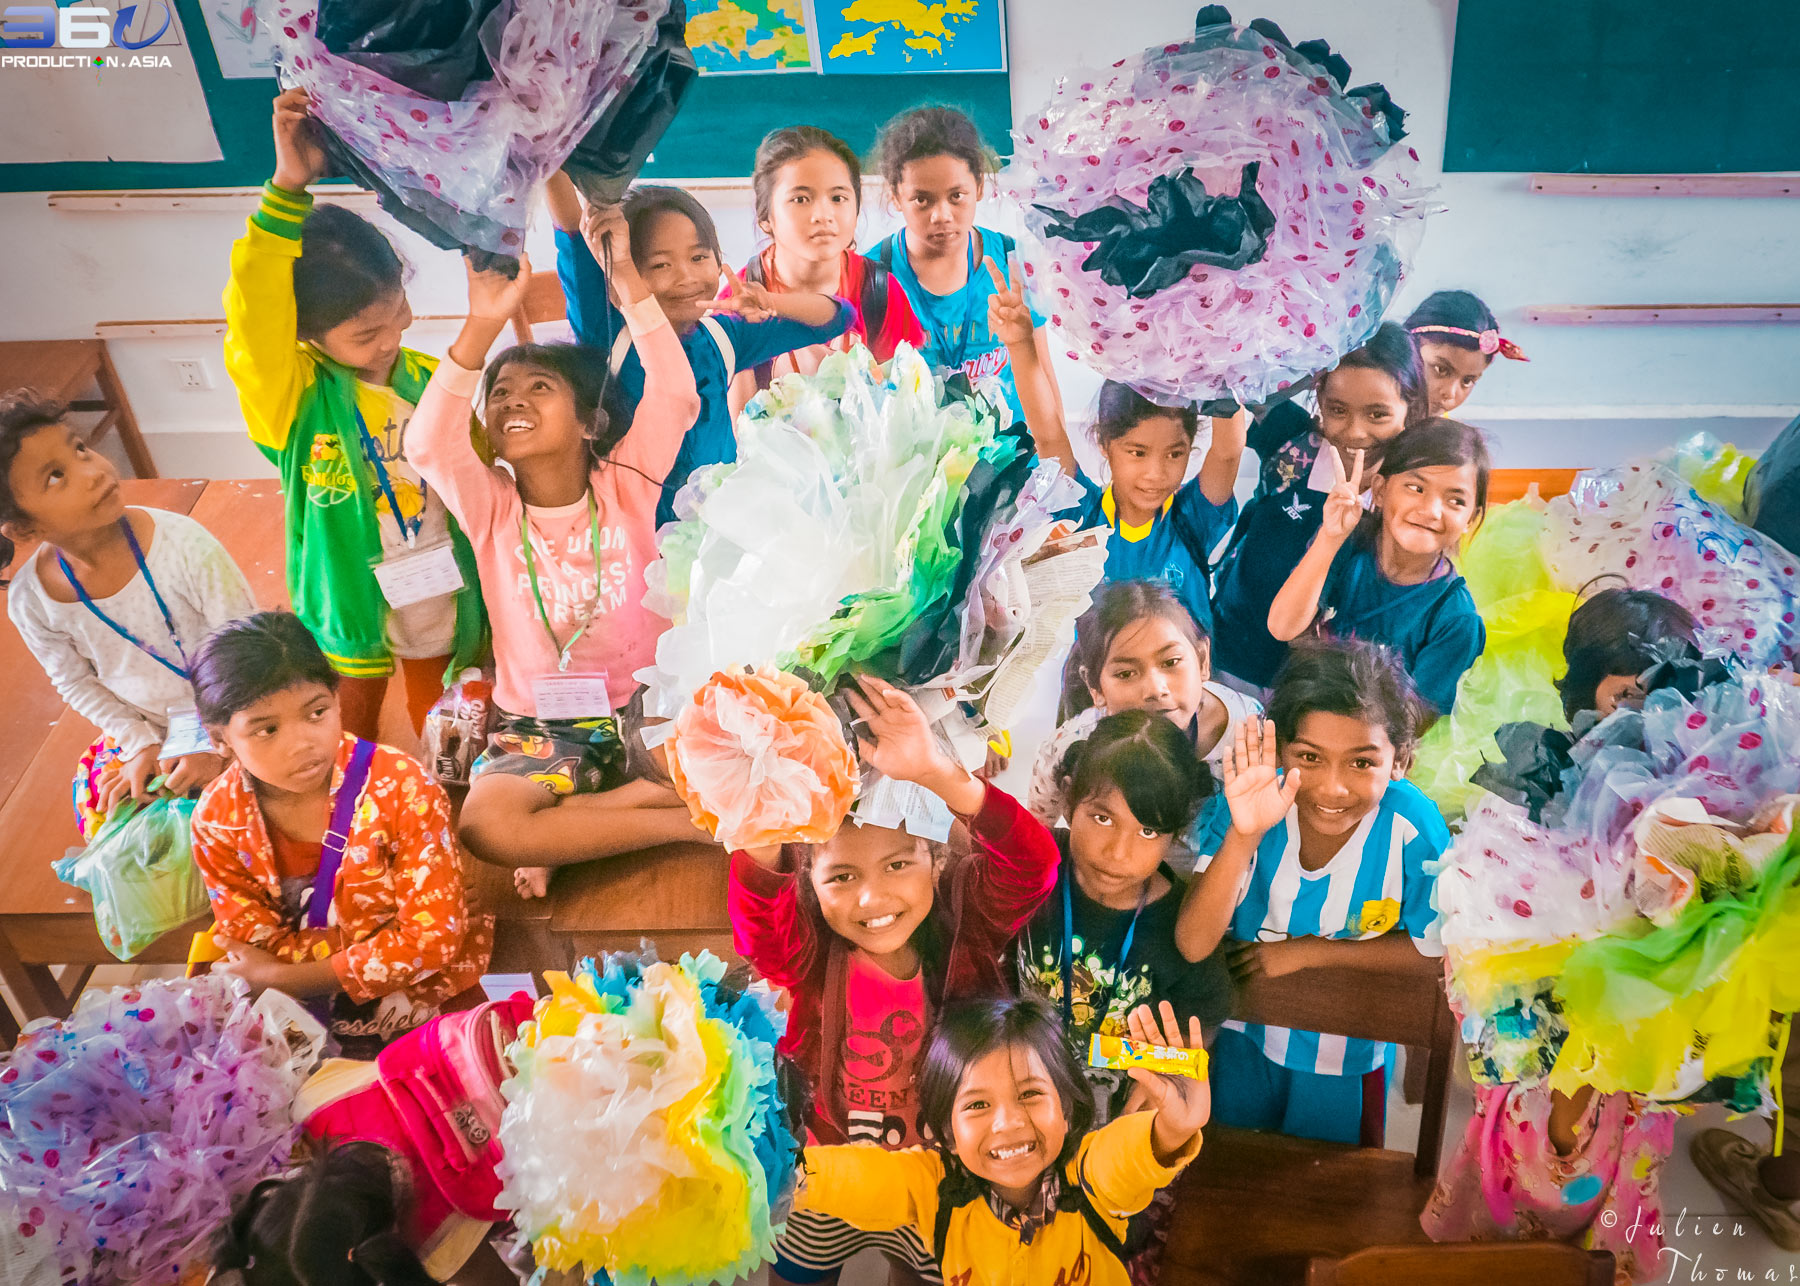 Cambodian participating children have finished to create giant plastic flowers from upcycled waste materials during a craft and recycle course in their school.